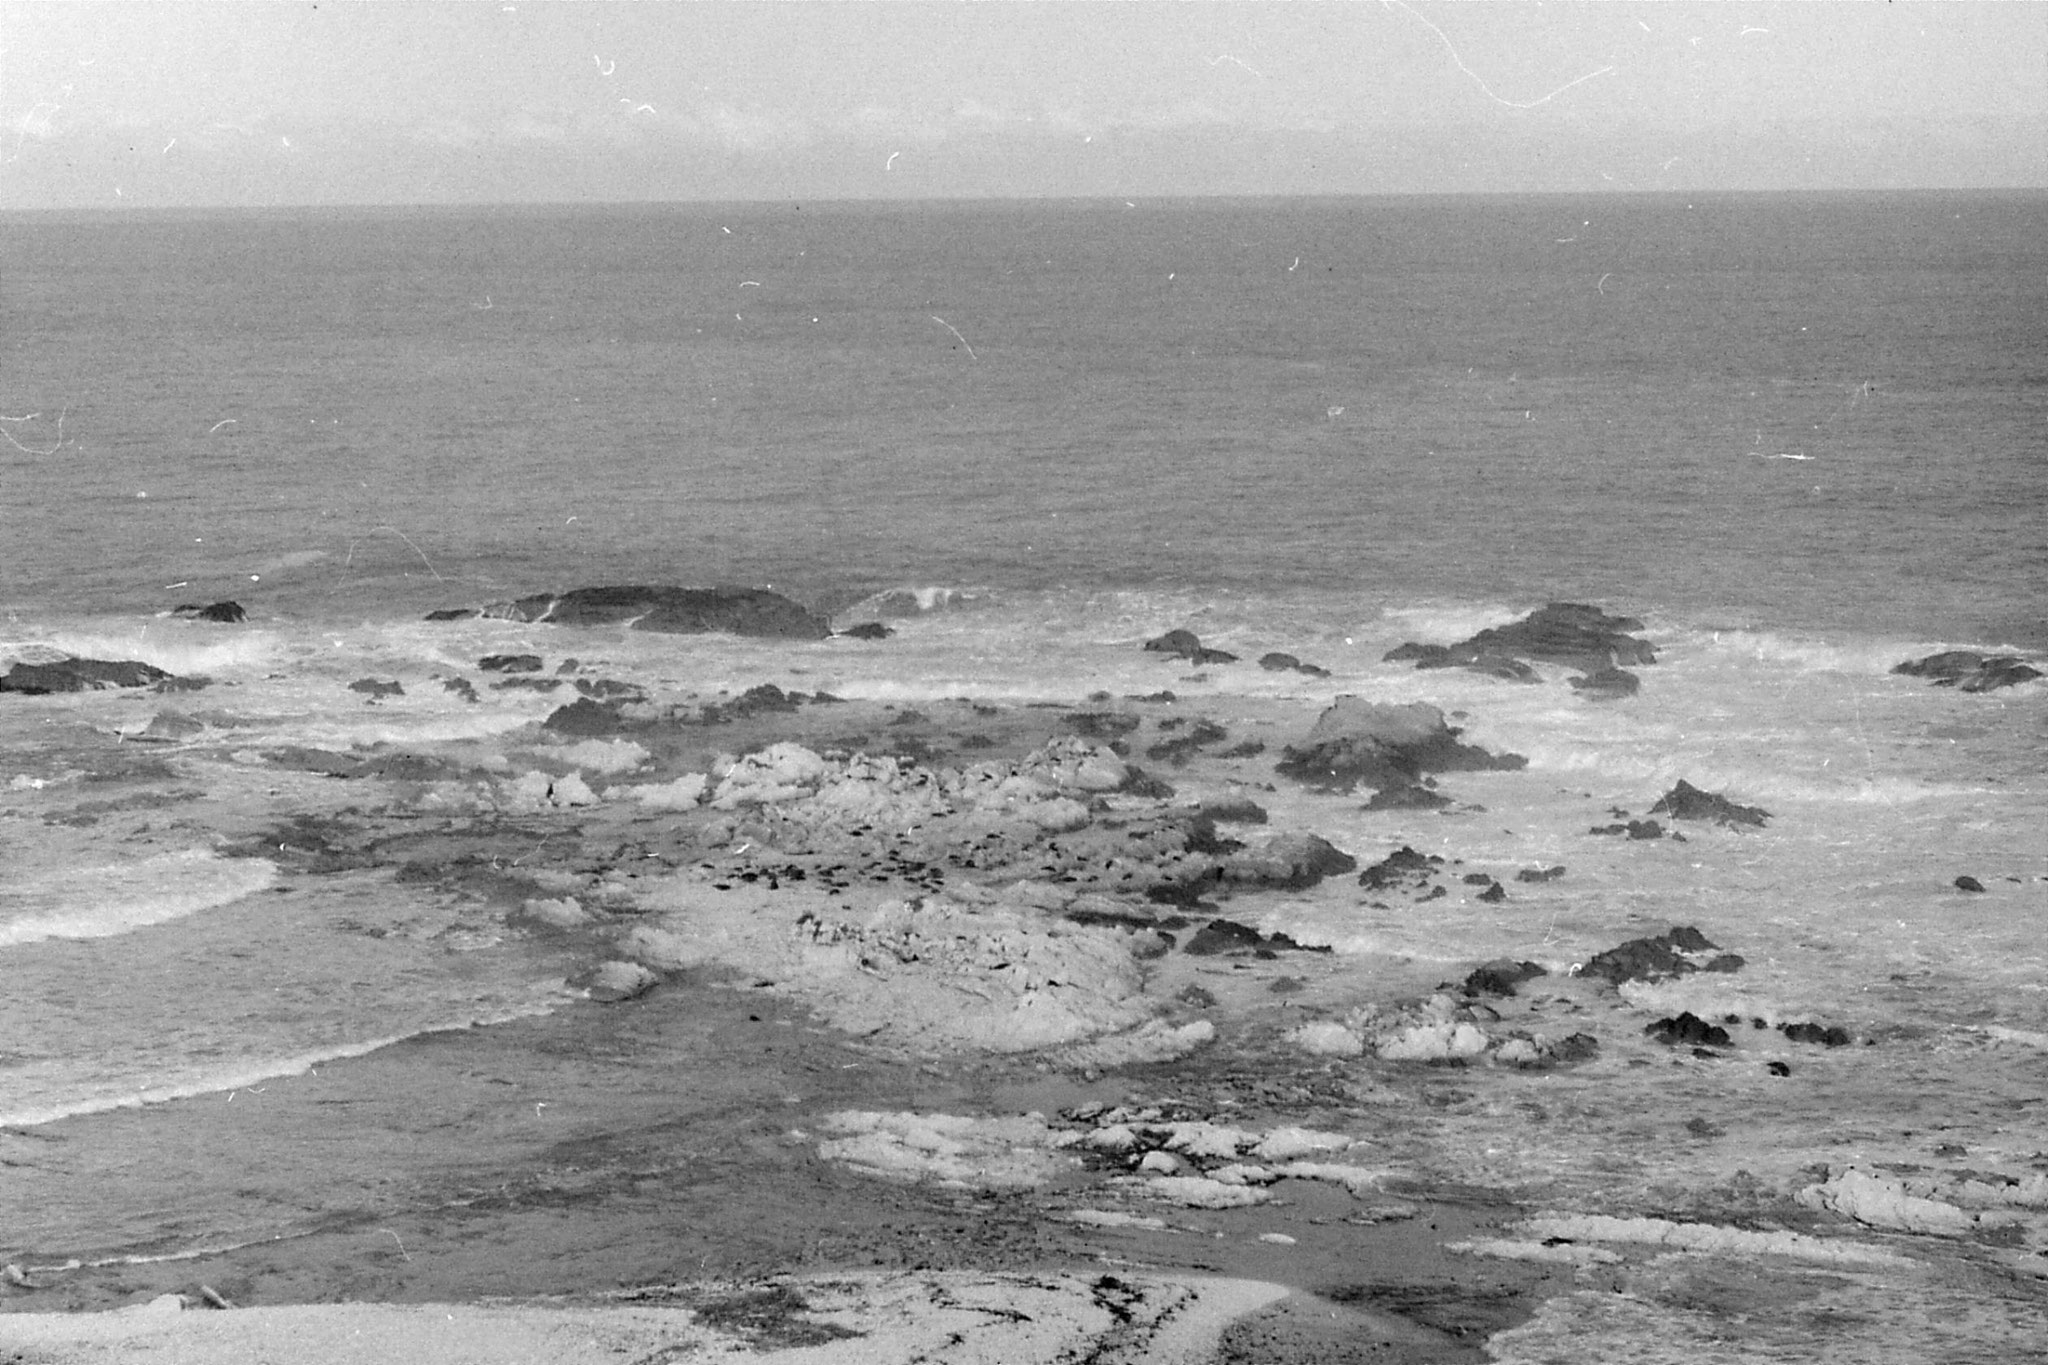 9/8/1990: 9: Kaikoura second seal colony